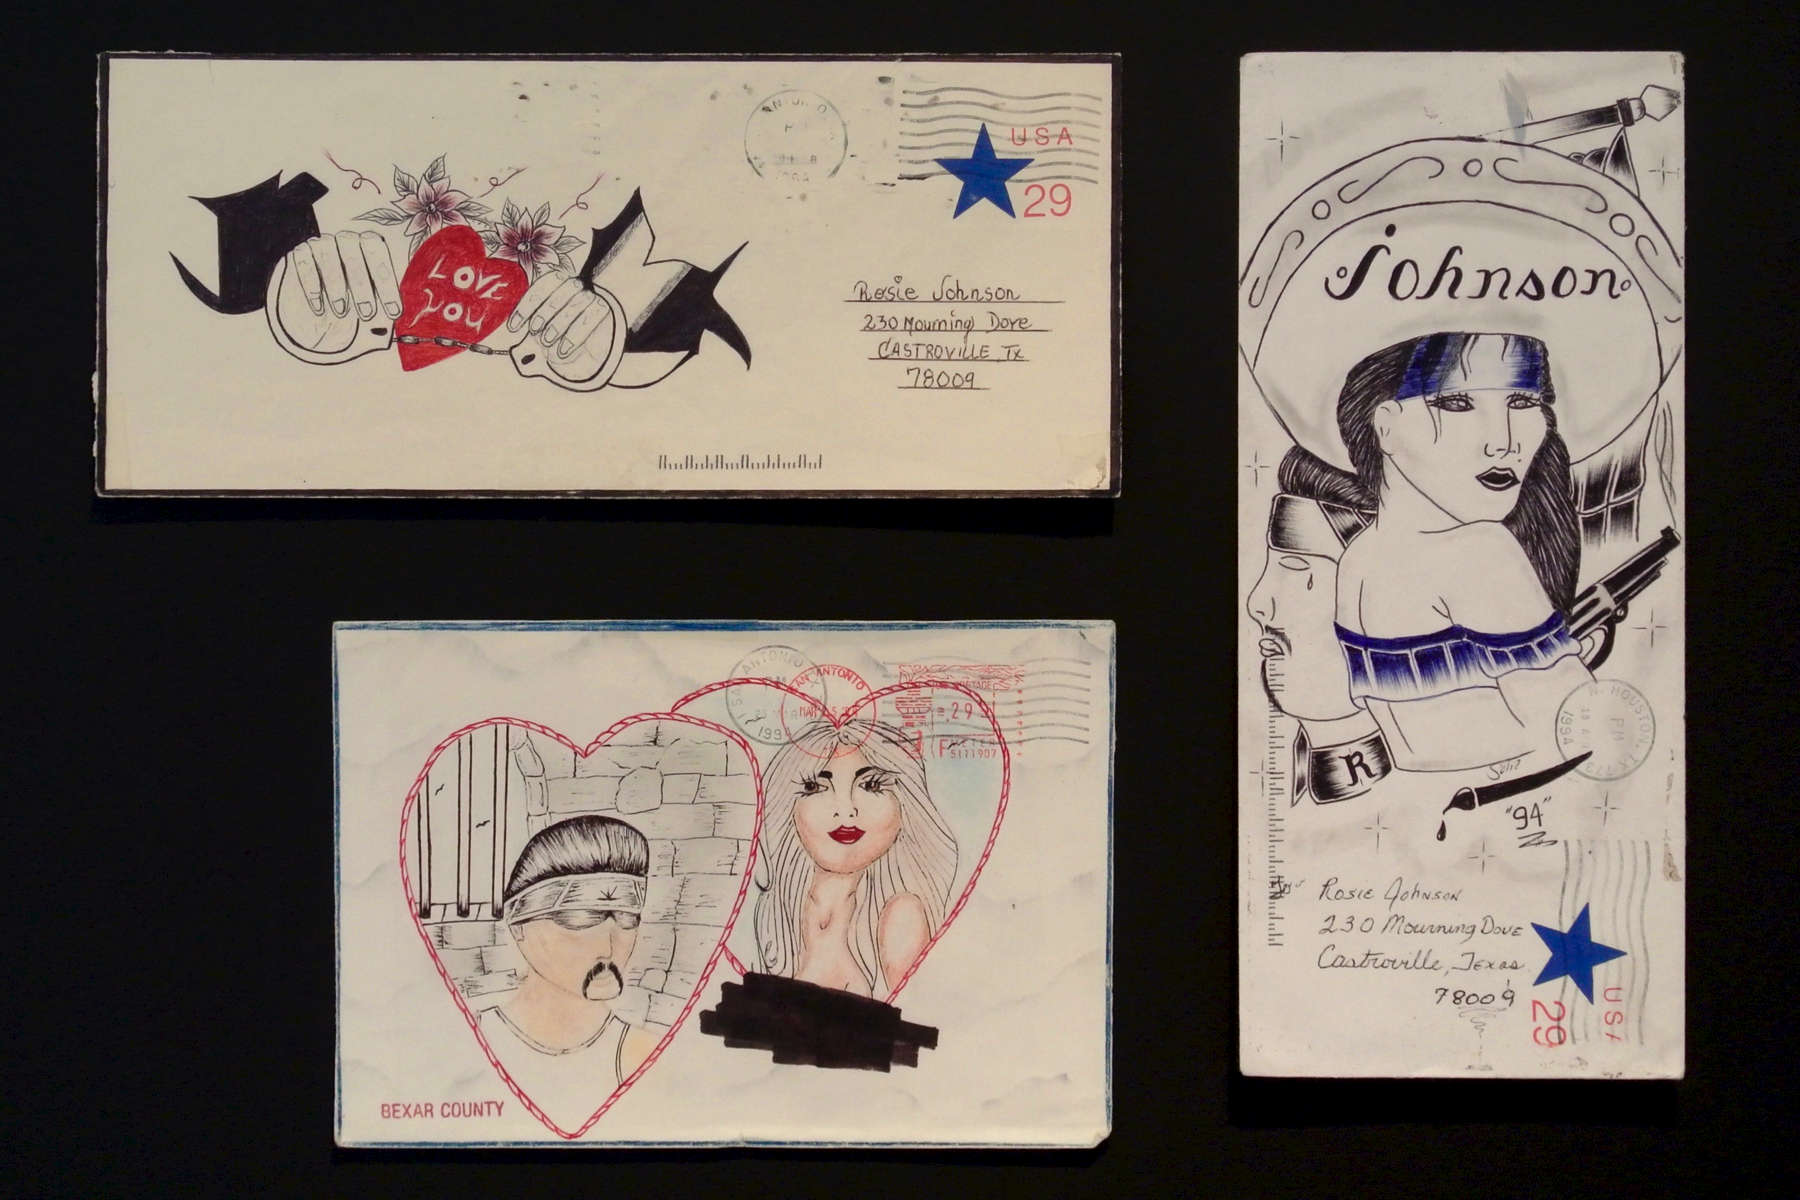 "Unidentified Chicano inmate-artistGrouping of 3 Paños Envelopes*Graphite, colored pencil, pen and ink on stamped, franked envelopesFramed size:  54,5 x 74,5 cm1.  Woman with sombrero, approx. 24,2 x 10,5 cm (95 x 41 inches) 2.  Couple in heart, approx. 18,5 x 12,5 cm (73 x 49 inches 3.  ""I love you"" with handcuffs, approx. 24,2 x 10,5 cm (95 x 41 inches)*Chicano inmates use hand-decorated envelopes in color or black and white to mail letters and paños (prisoner folk art made on a handkerchief). Demand for these envelopes can provide a profitable business for a convict skilled in drawing.Please click here for a comprehensive essay on paños by Martha V. Henry."